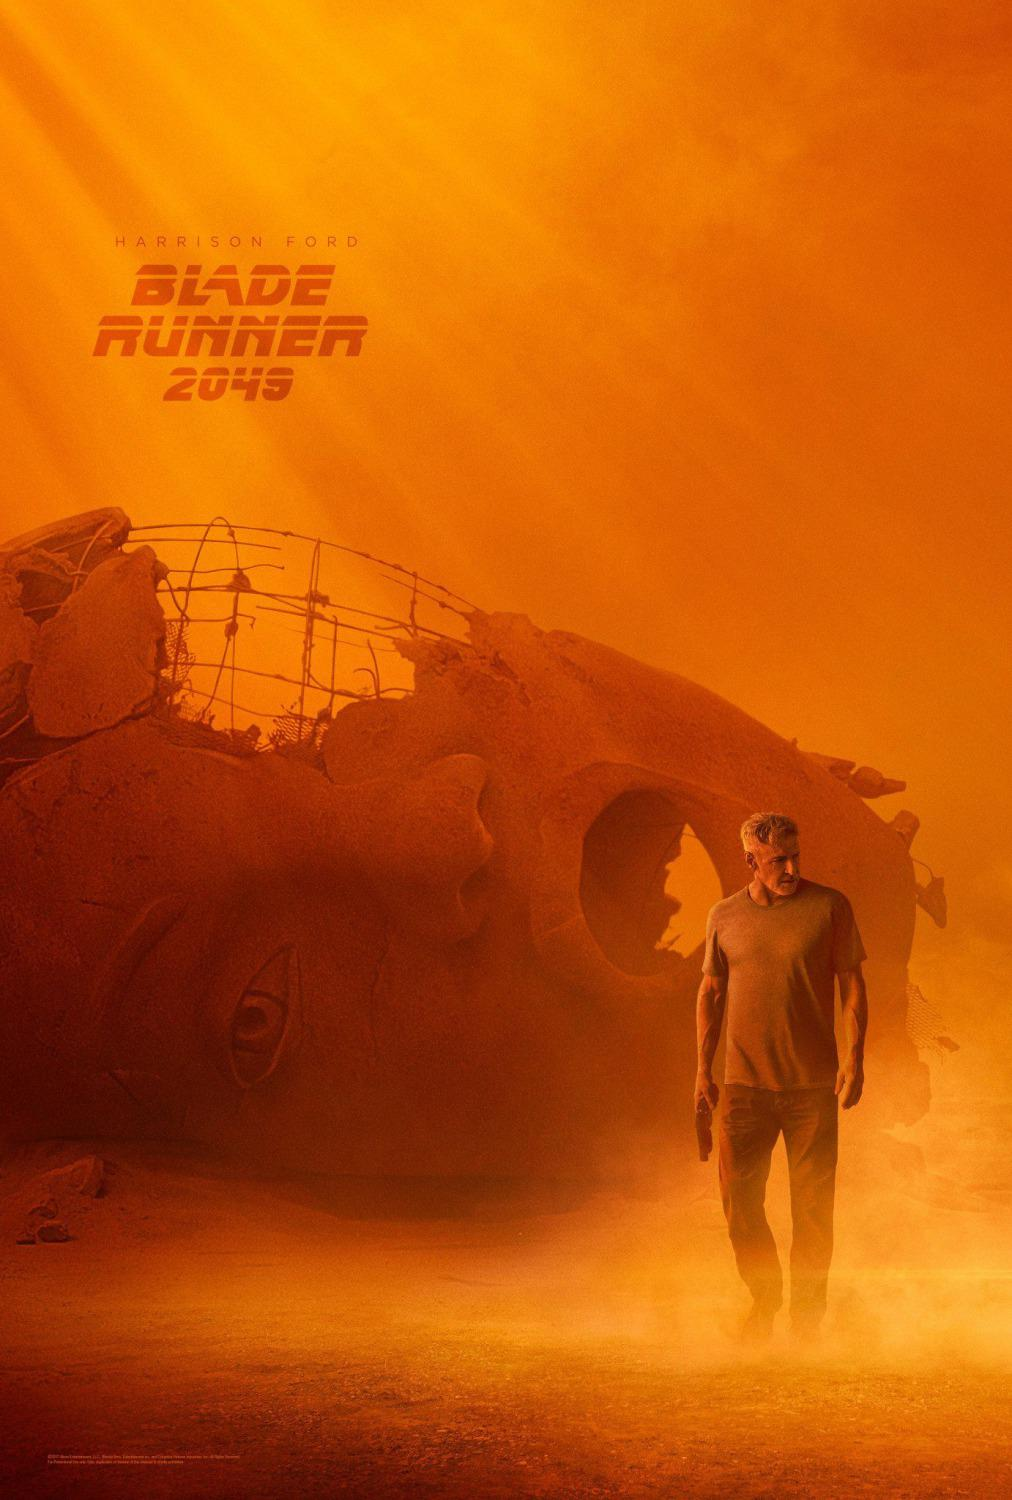 Blade Runner twenty forty nine 2049 - Harrison Ford - Ryan Gosling